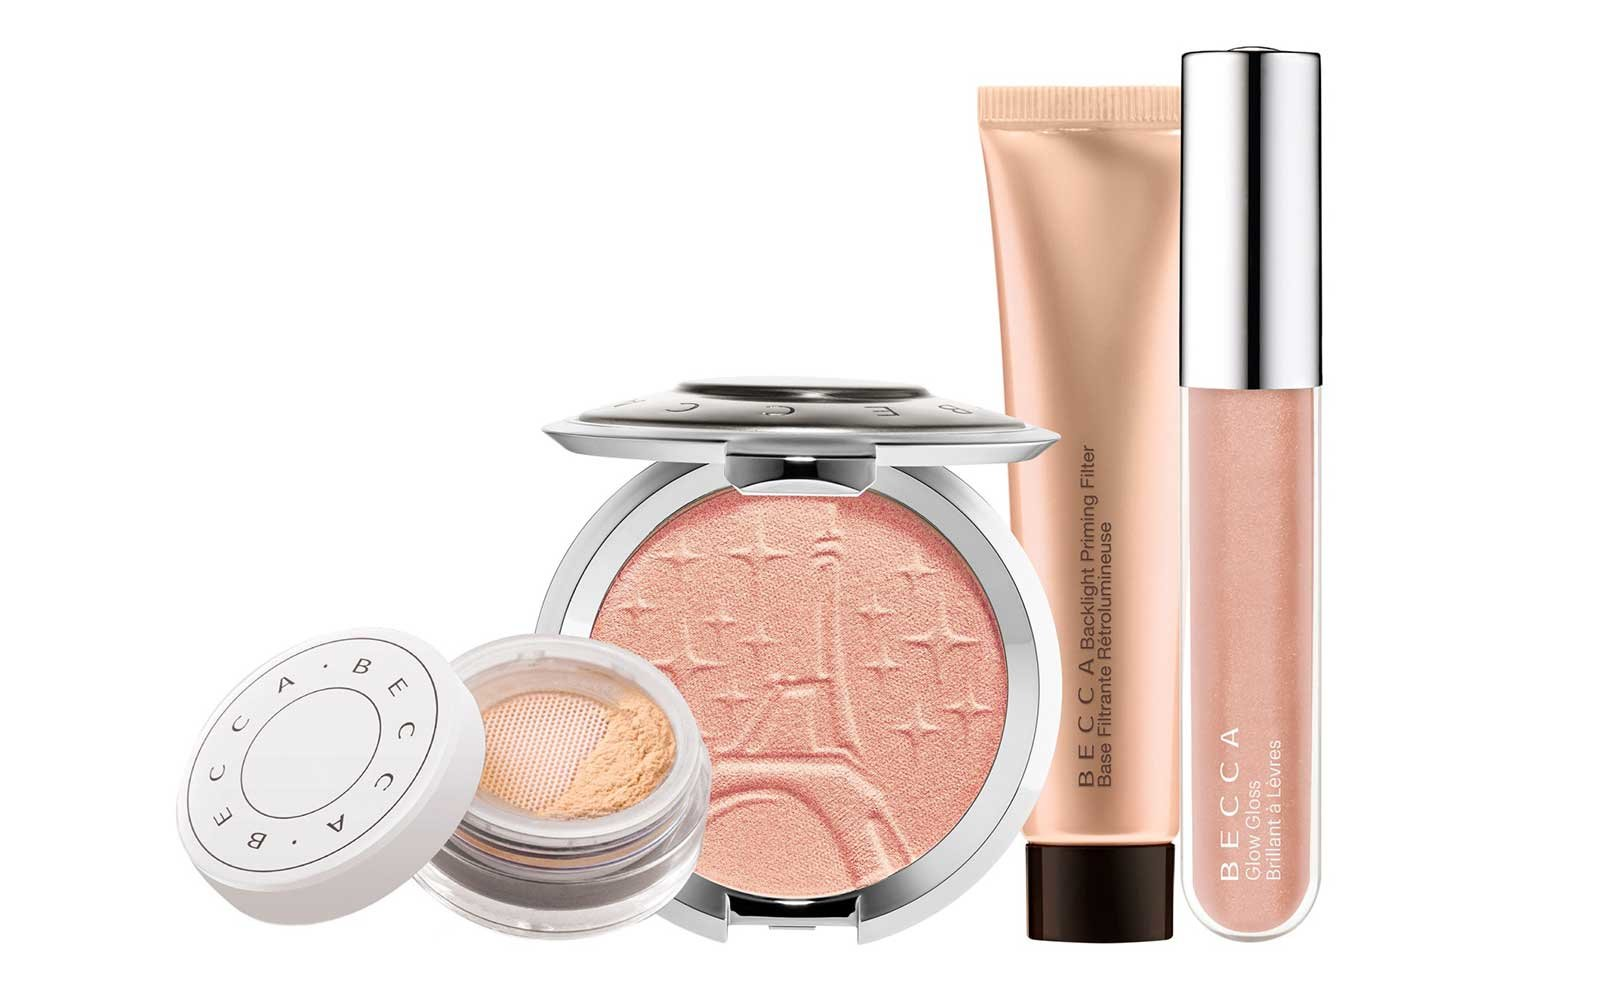 Becca Cosmetics travel beauty set